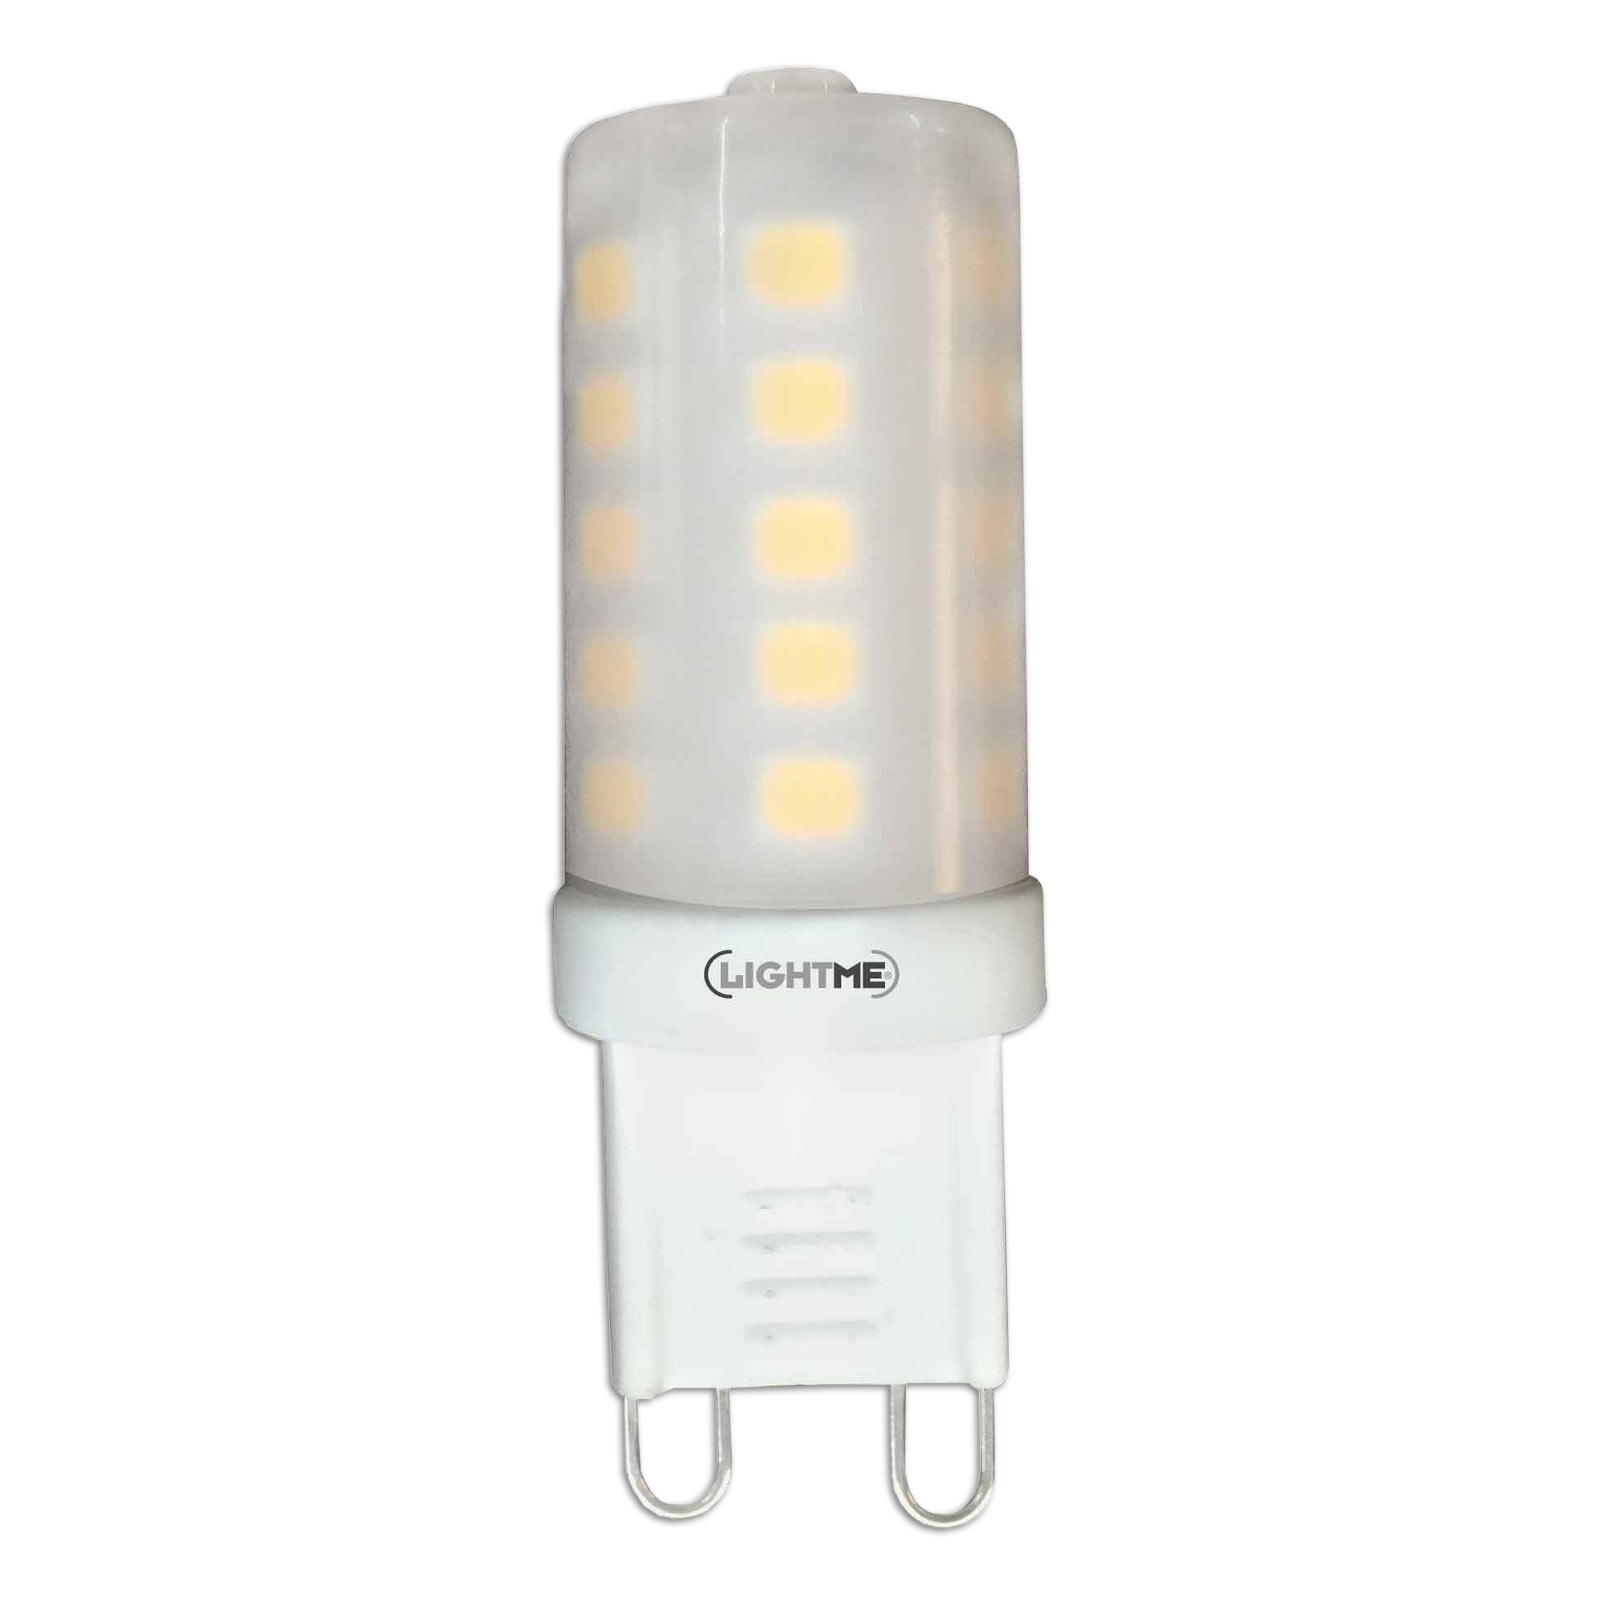 LED-Stiftsockellampe - G9 - 3 Watt - warmweiß